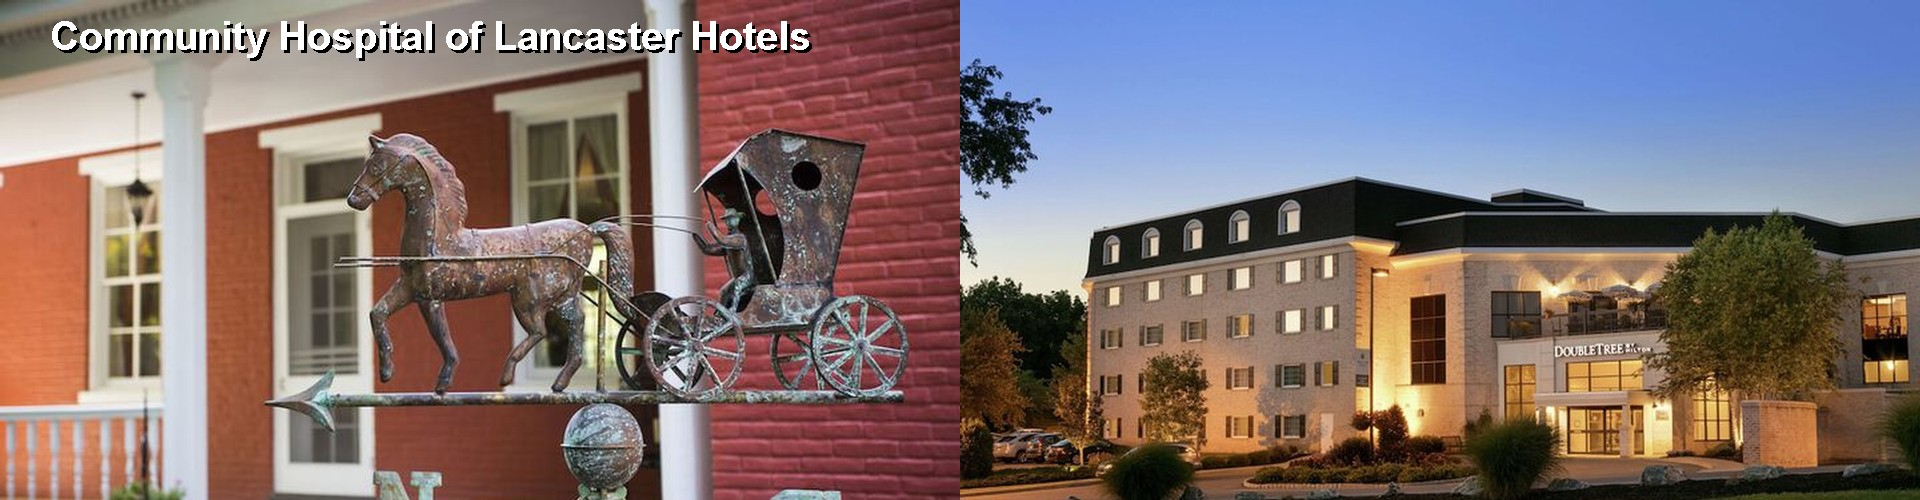 5 Best Hotels near Community Hospital of Lancaster